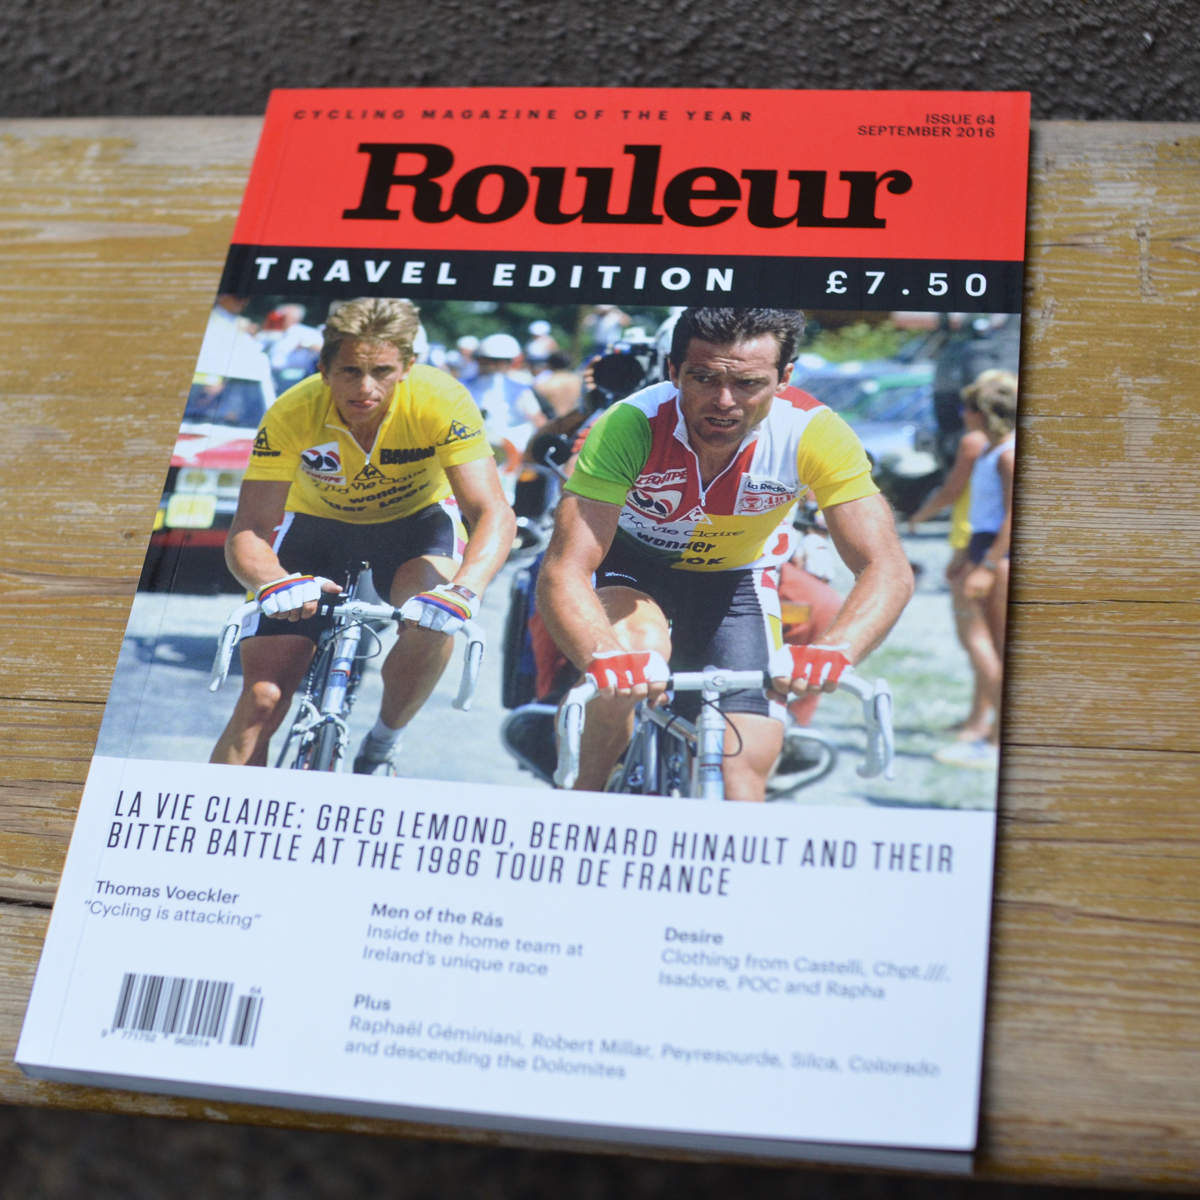 Rouleur issue 64 Travel Edition